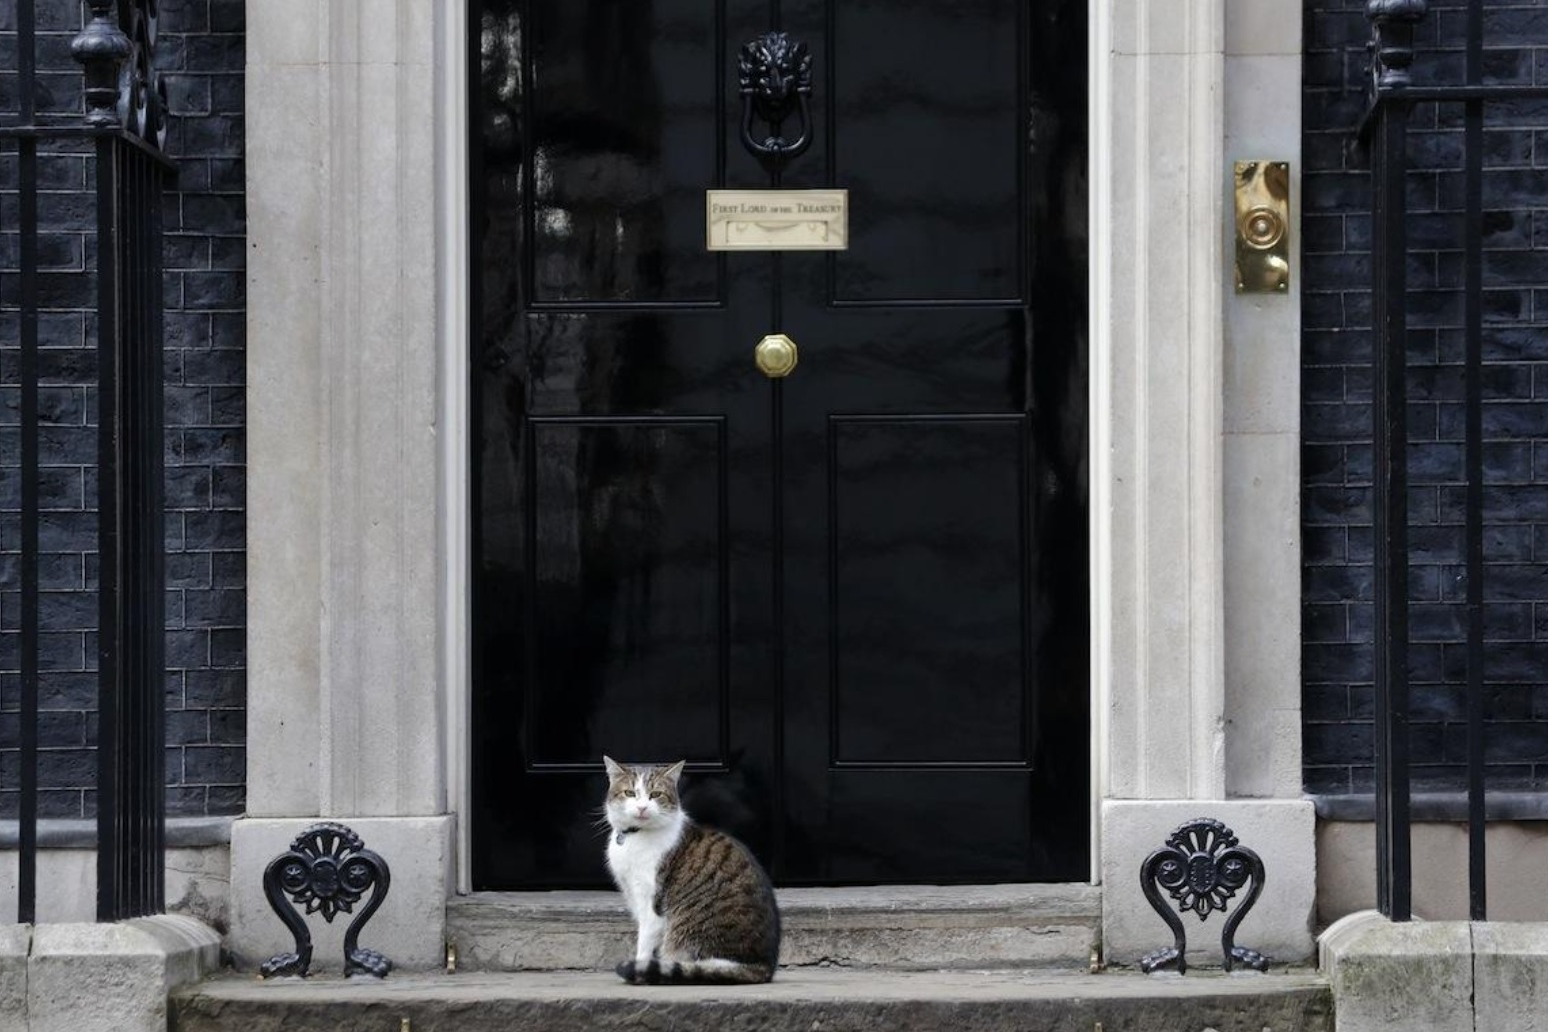 Chief mouser Larry the cat celebrates 10 years in Downing Street